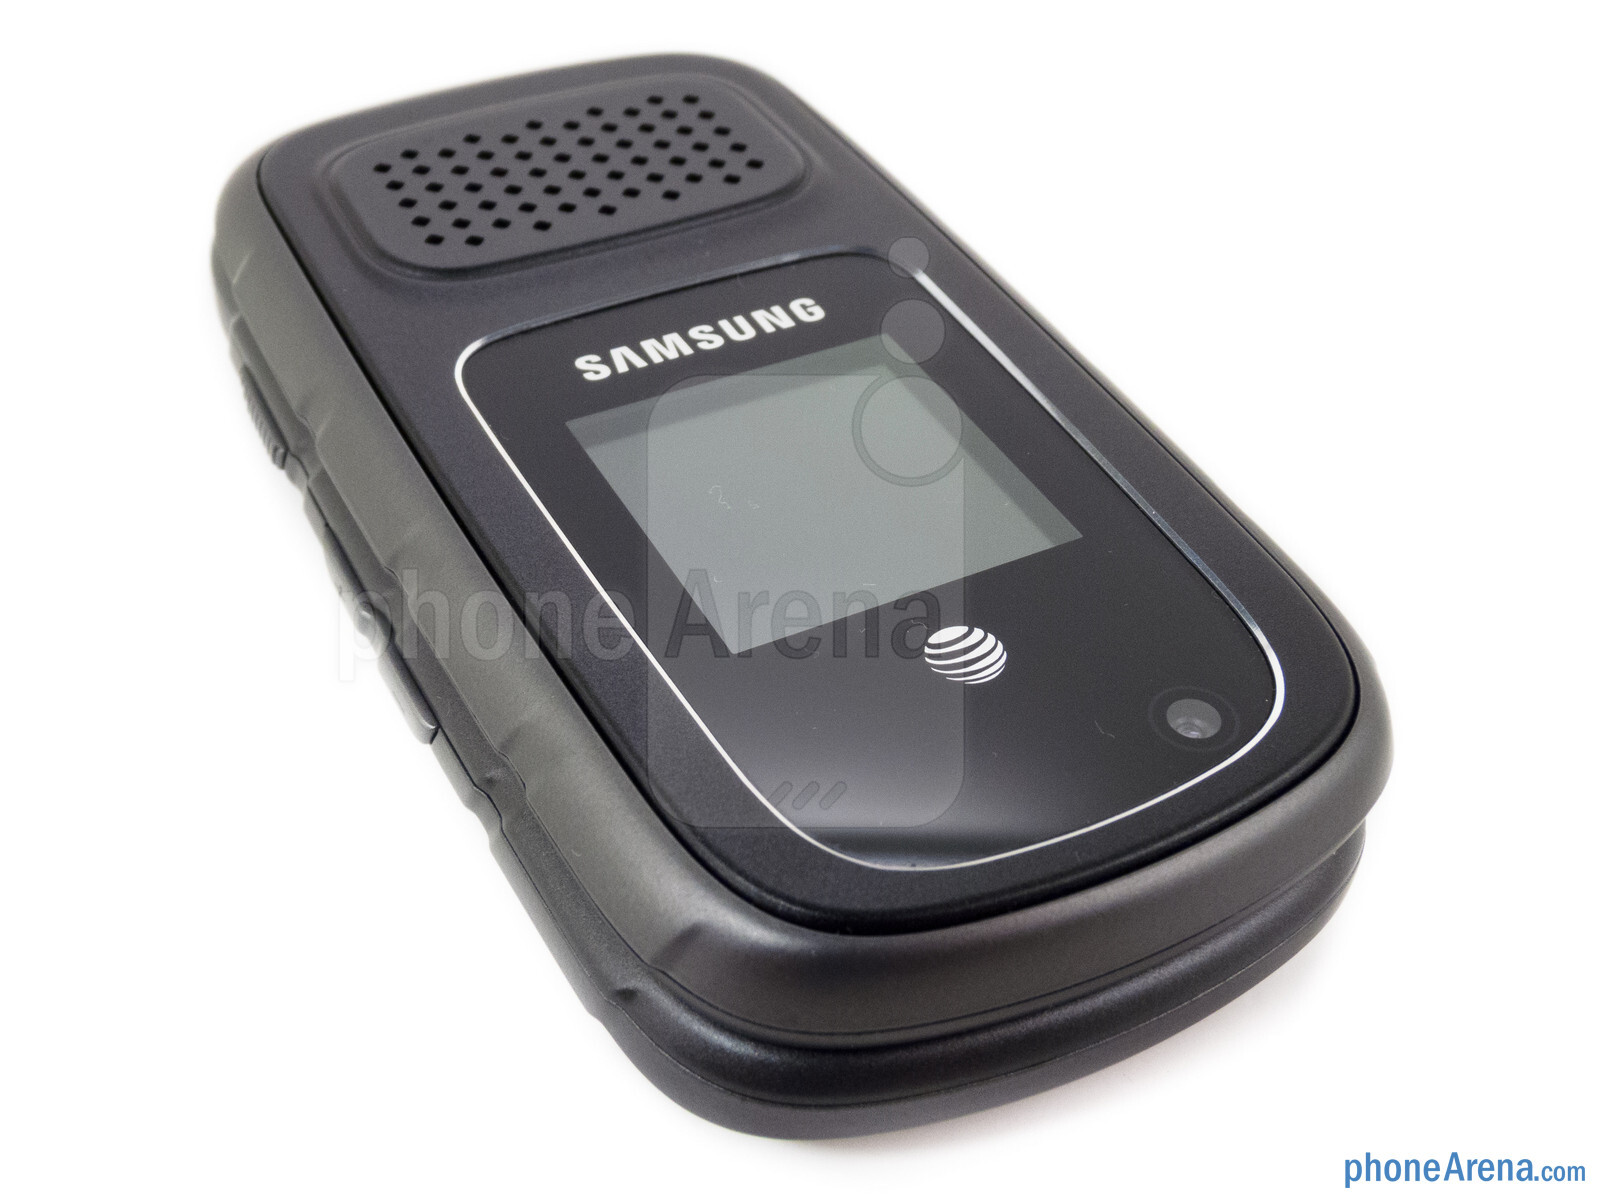 Cell phone spyware for samsung rugby – how to know if spyware is on your blackberry